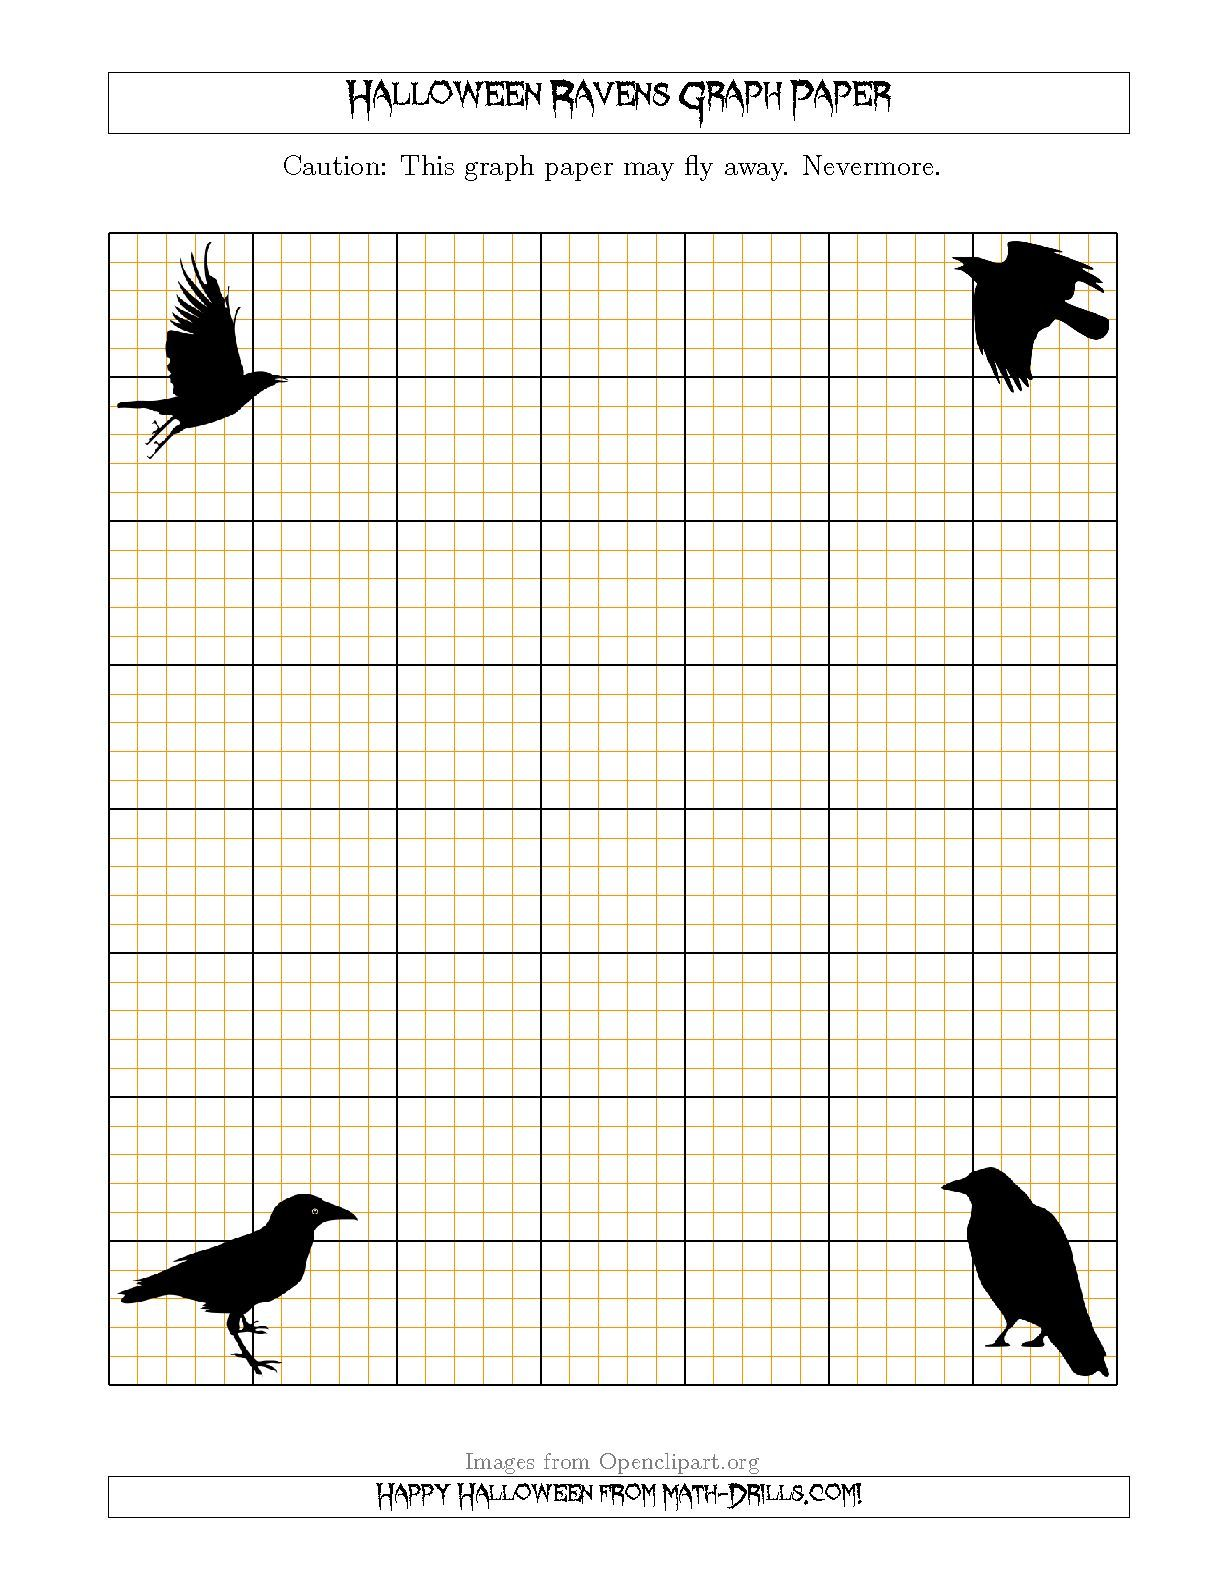 New 09 17 Halloween Ravens 5 Lines Inch Math